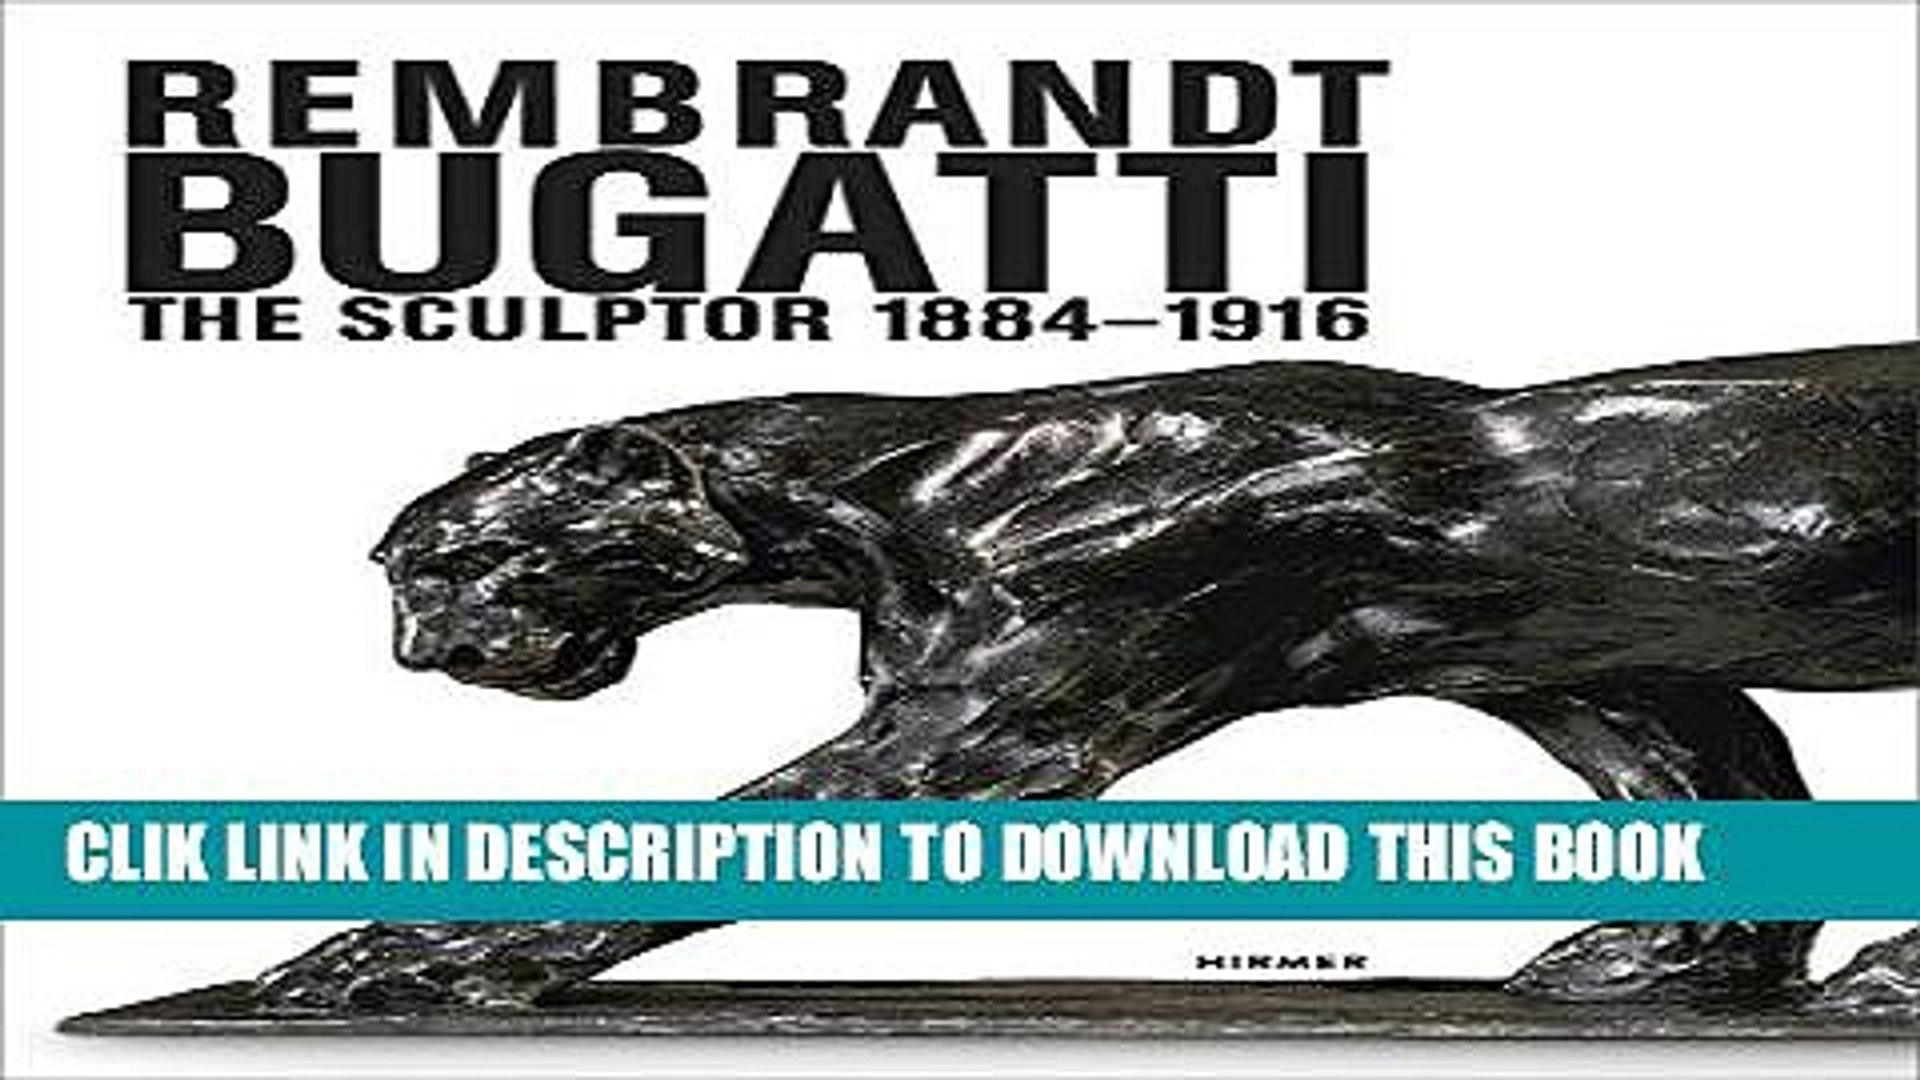 [PDF] Rembrandt Bugatti: The Sculptor 1884 - 1916 Popular Online